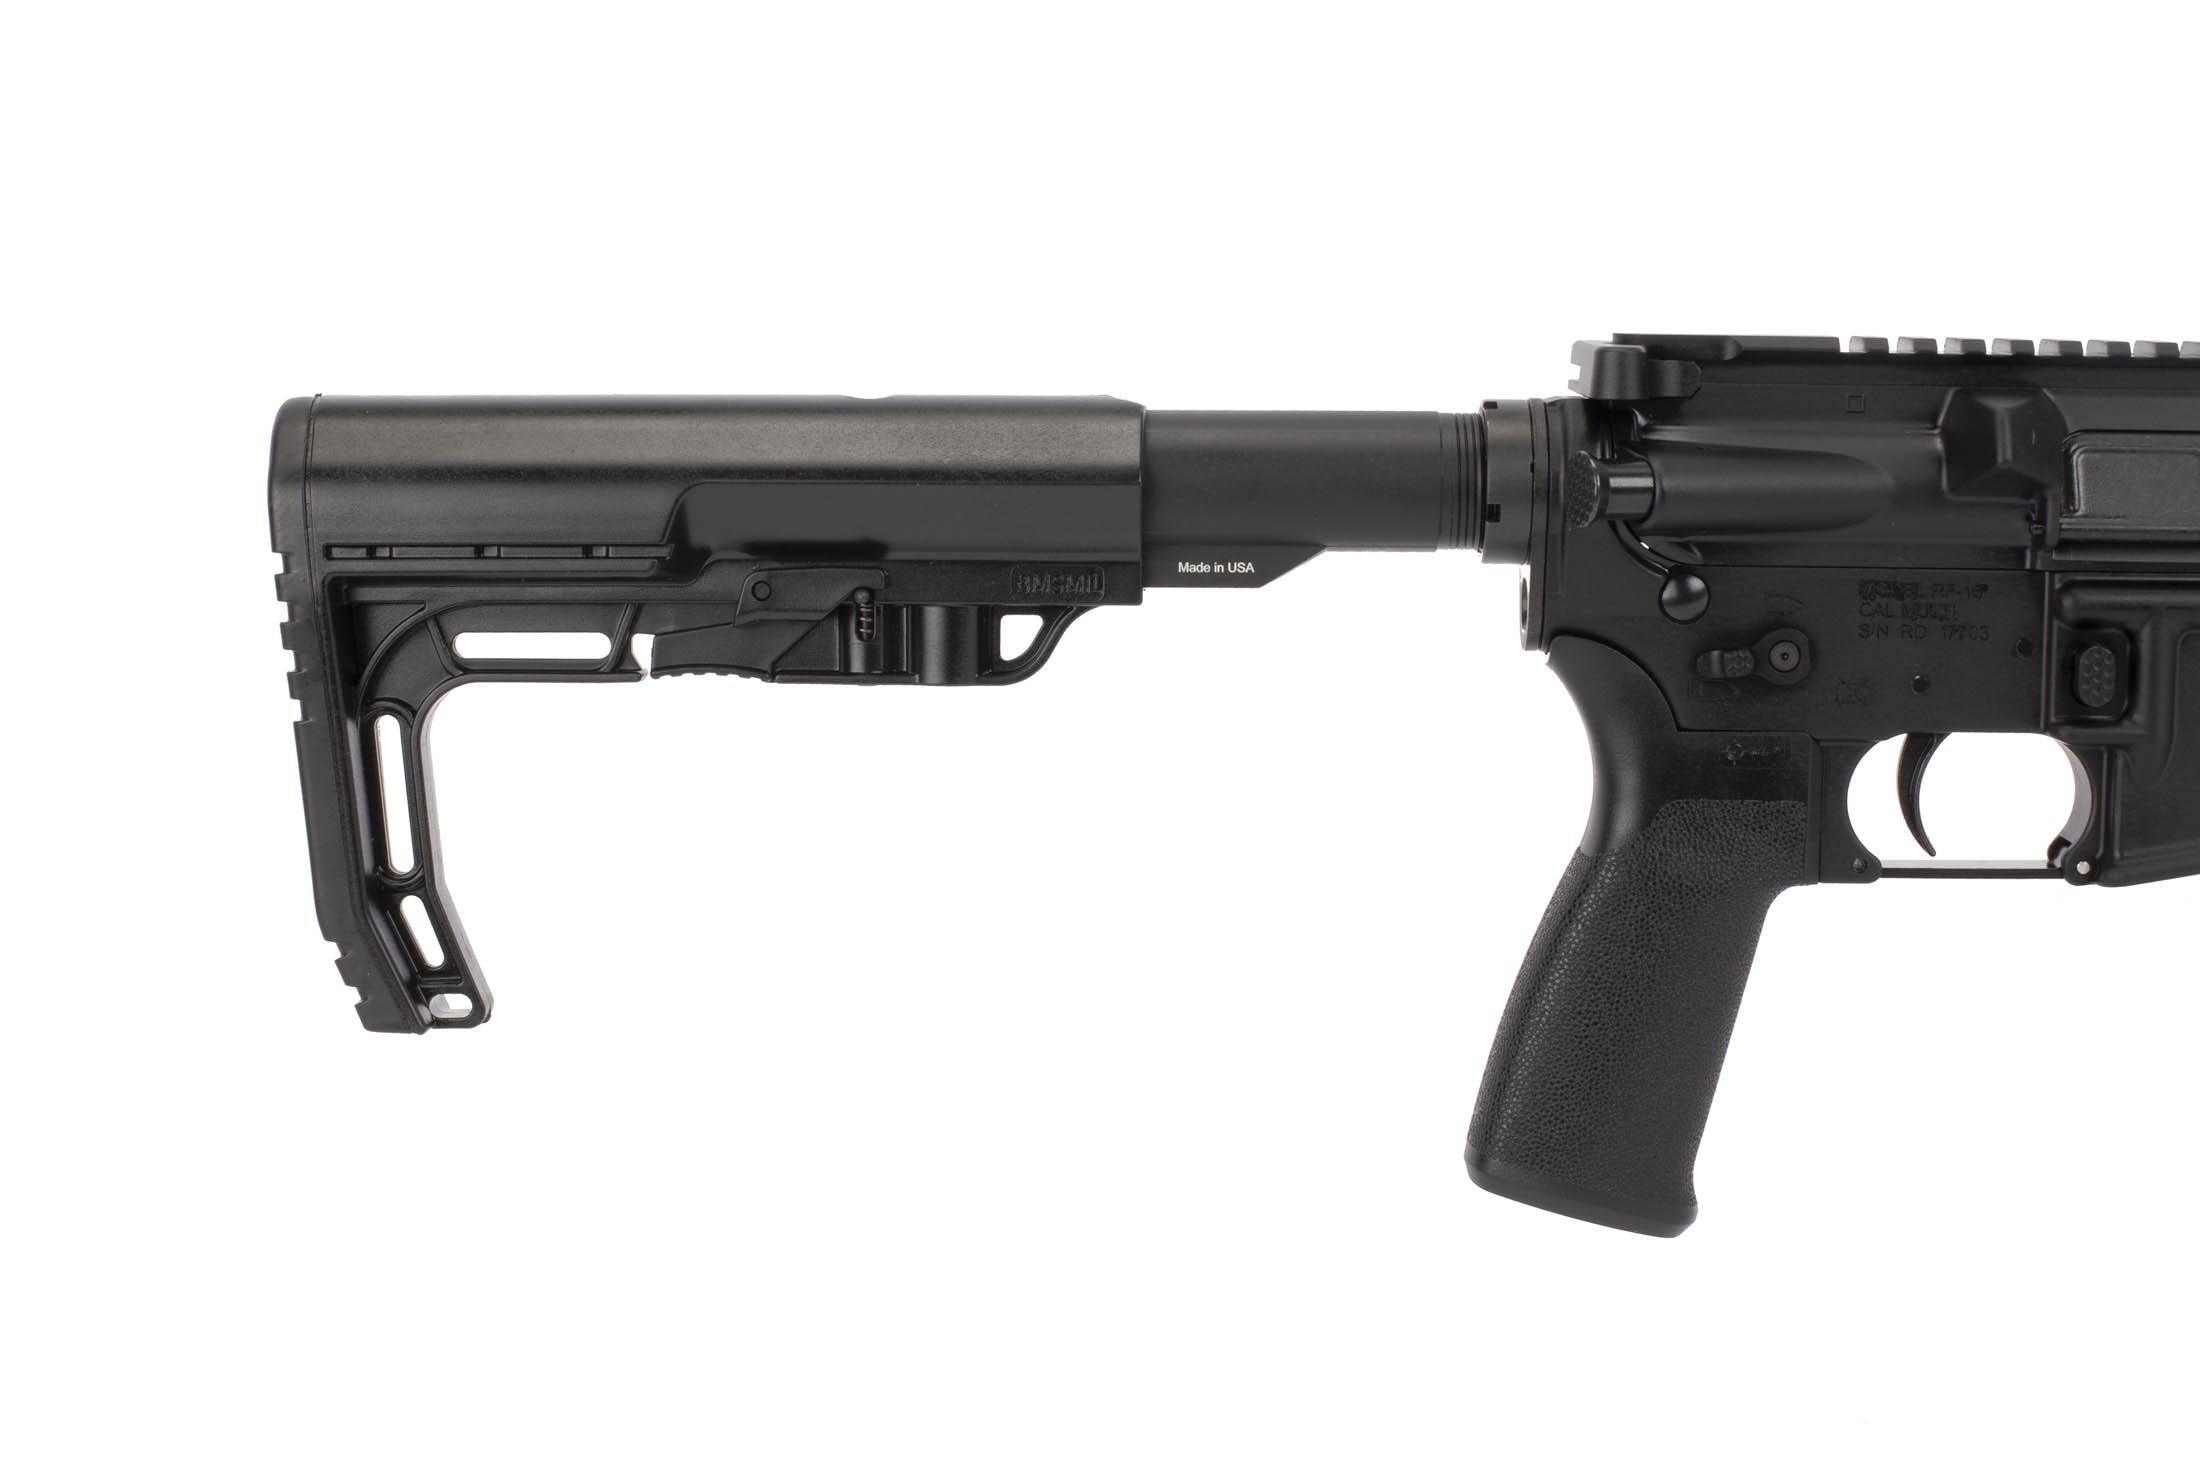 Radical Firearms 300 BLK 16in AR-15 includes a MIL-SPEC Mission First Tactical Minimalist carbine stock